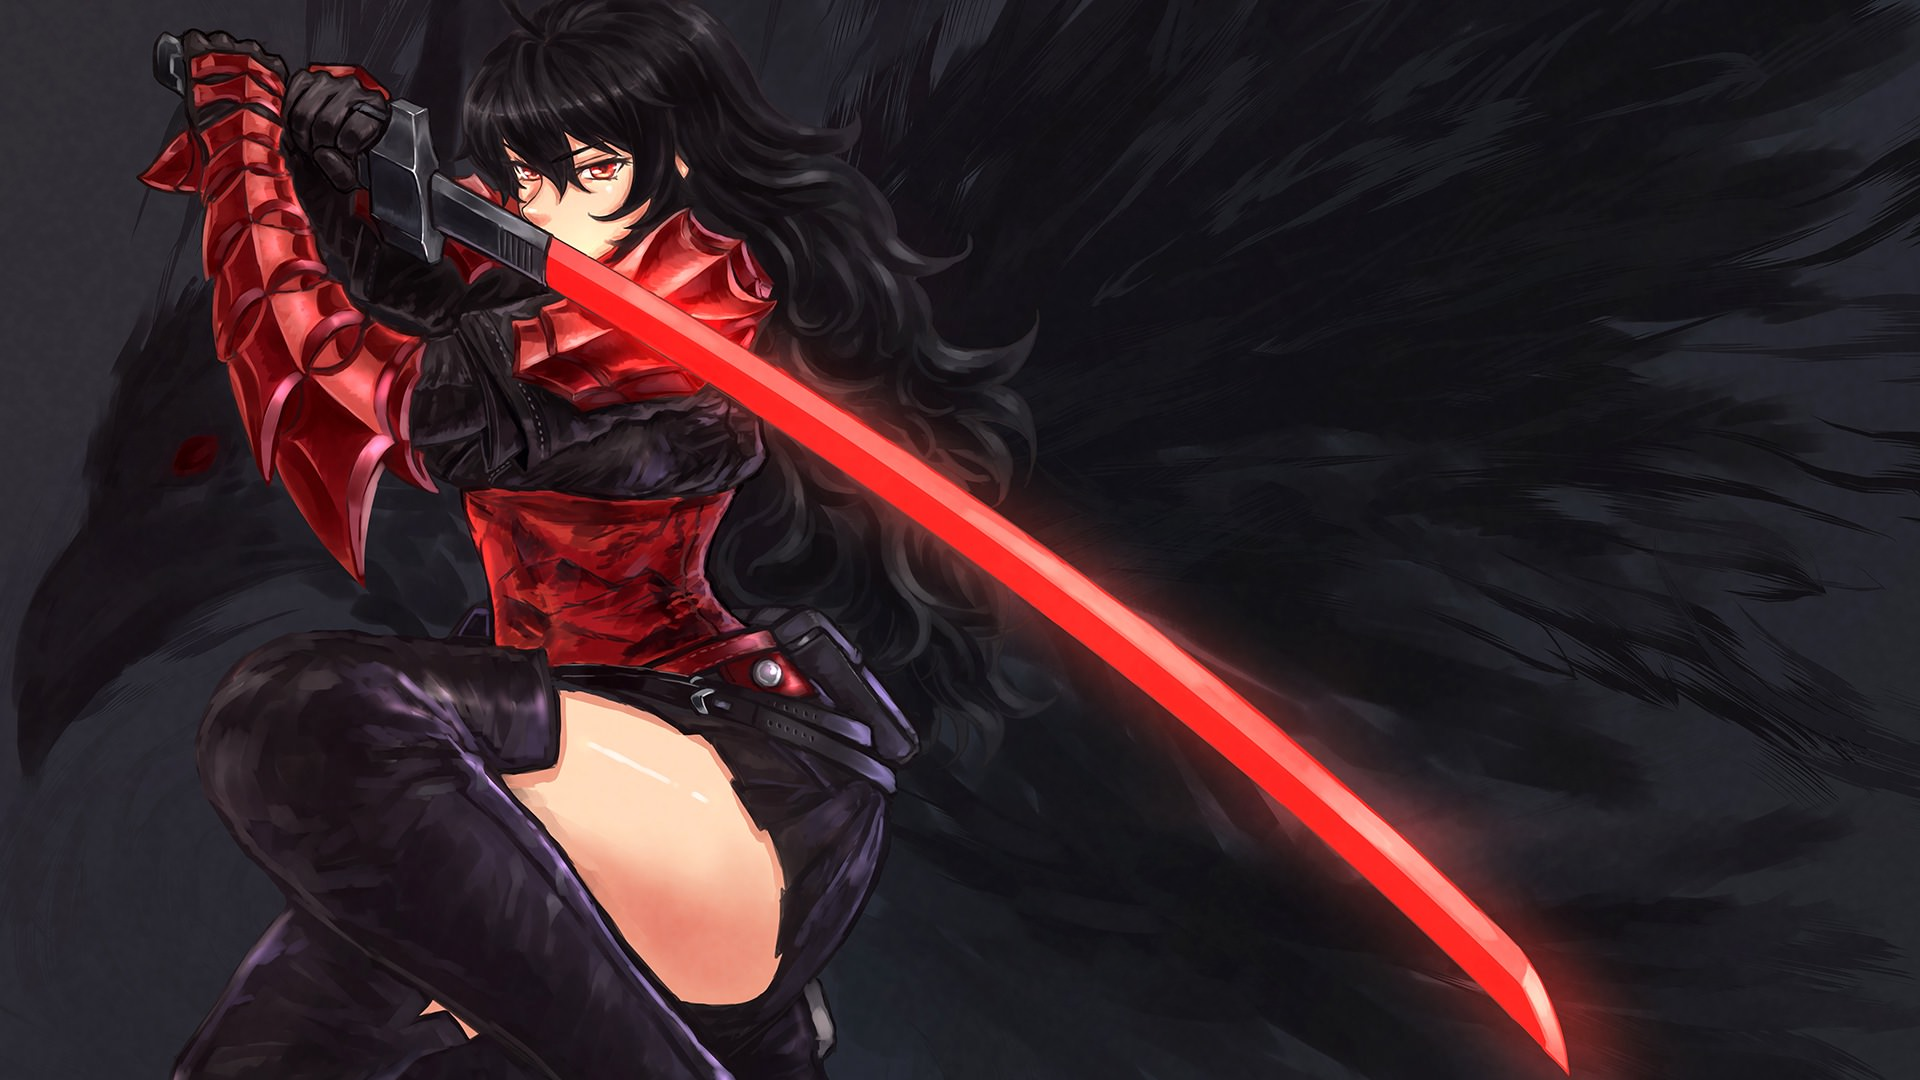 32 Best Free Anime Girl With Sword Wallpapers Wallpaperaccess